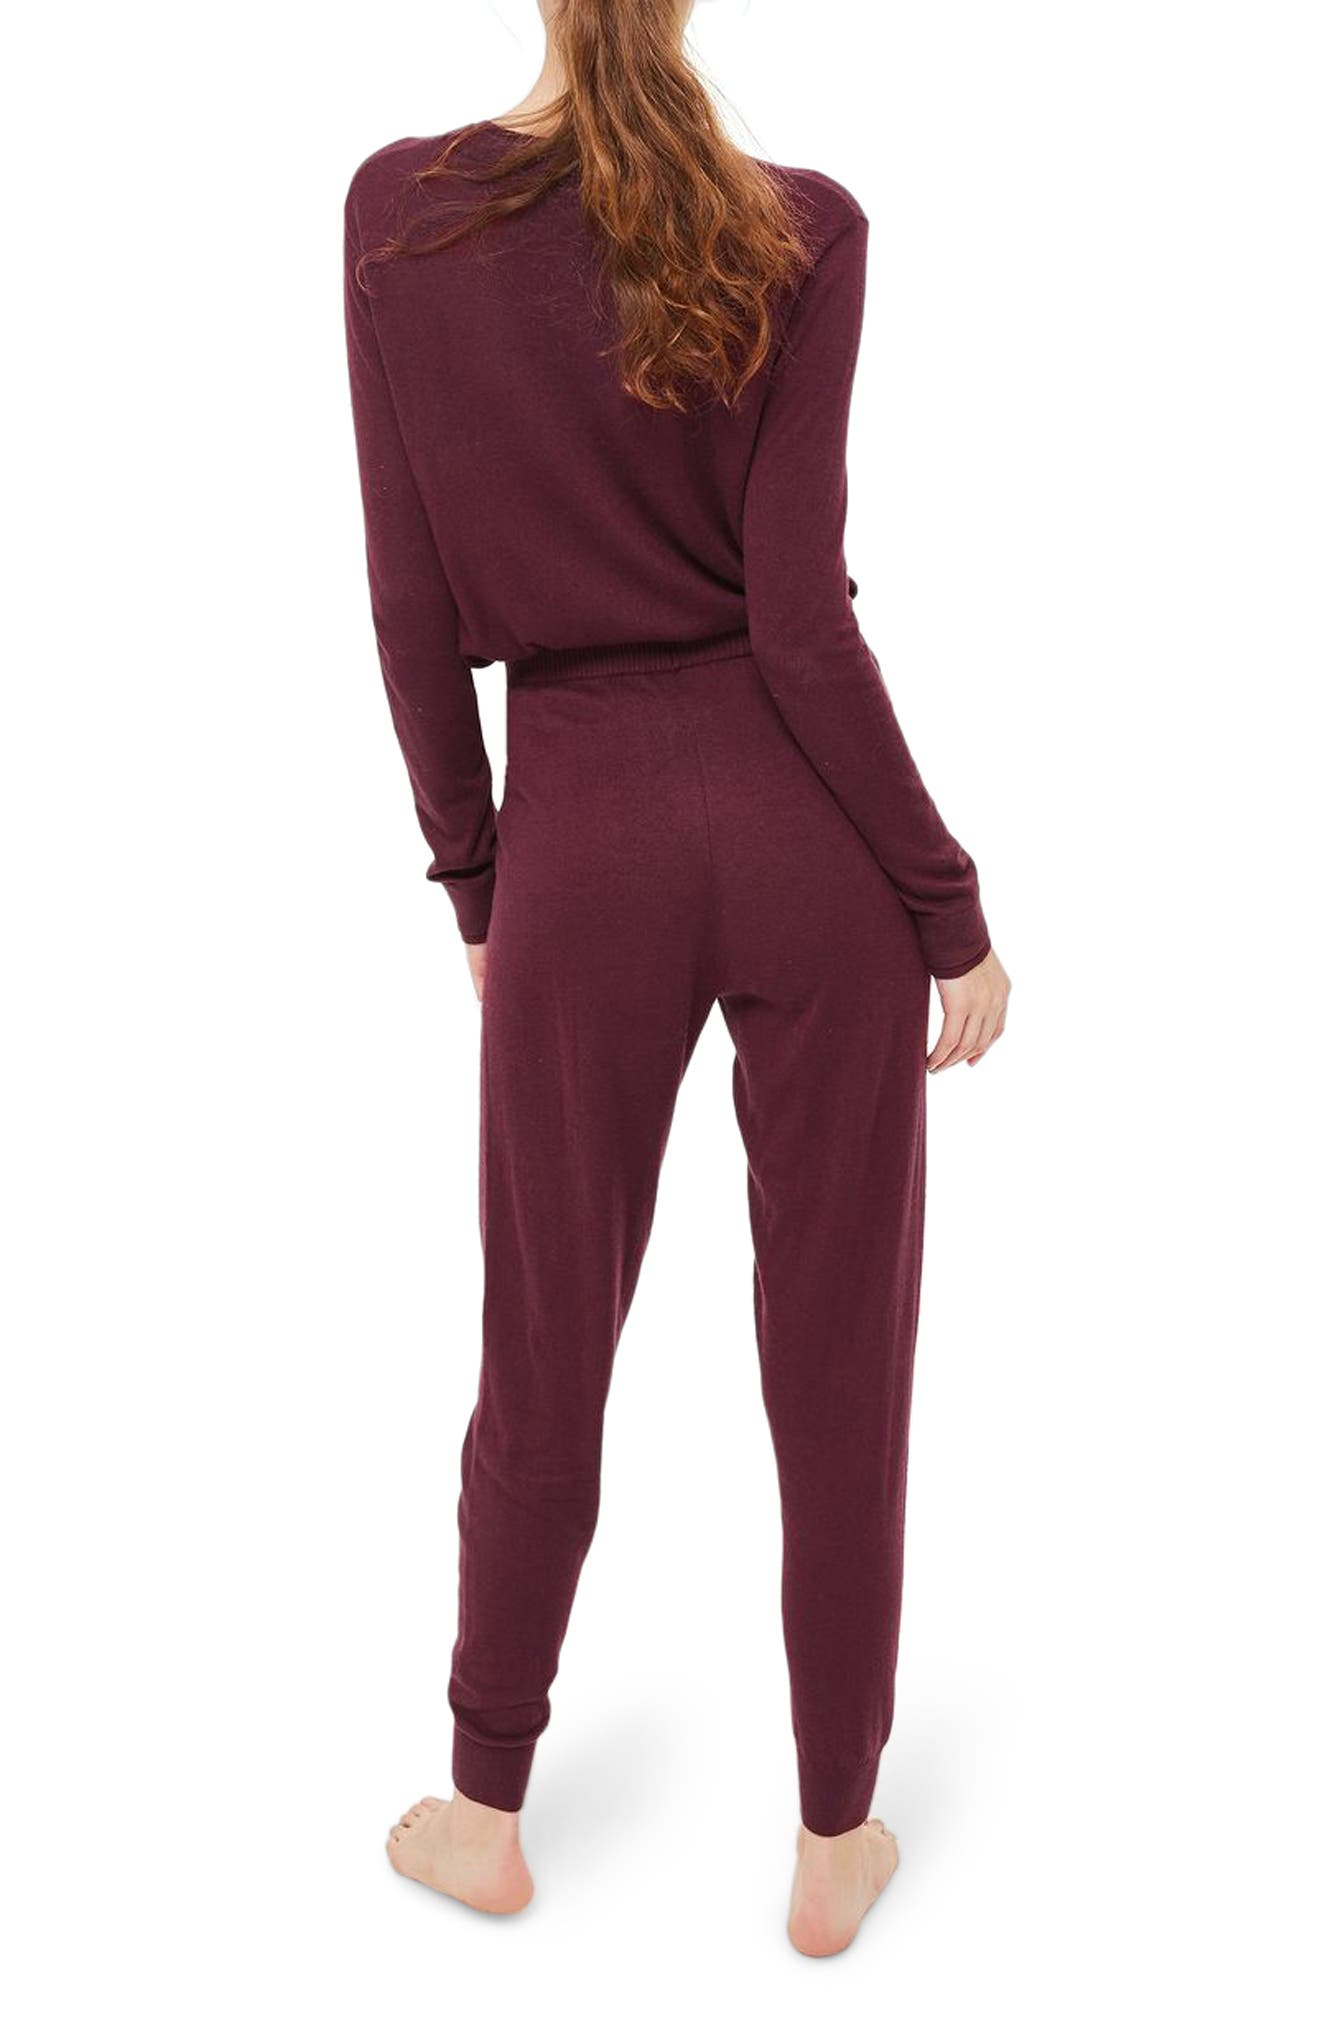 Jogger Lounge Pants,                             Alternate thumbnail 2, color,                             Berry Red